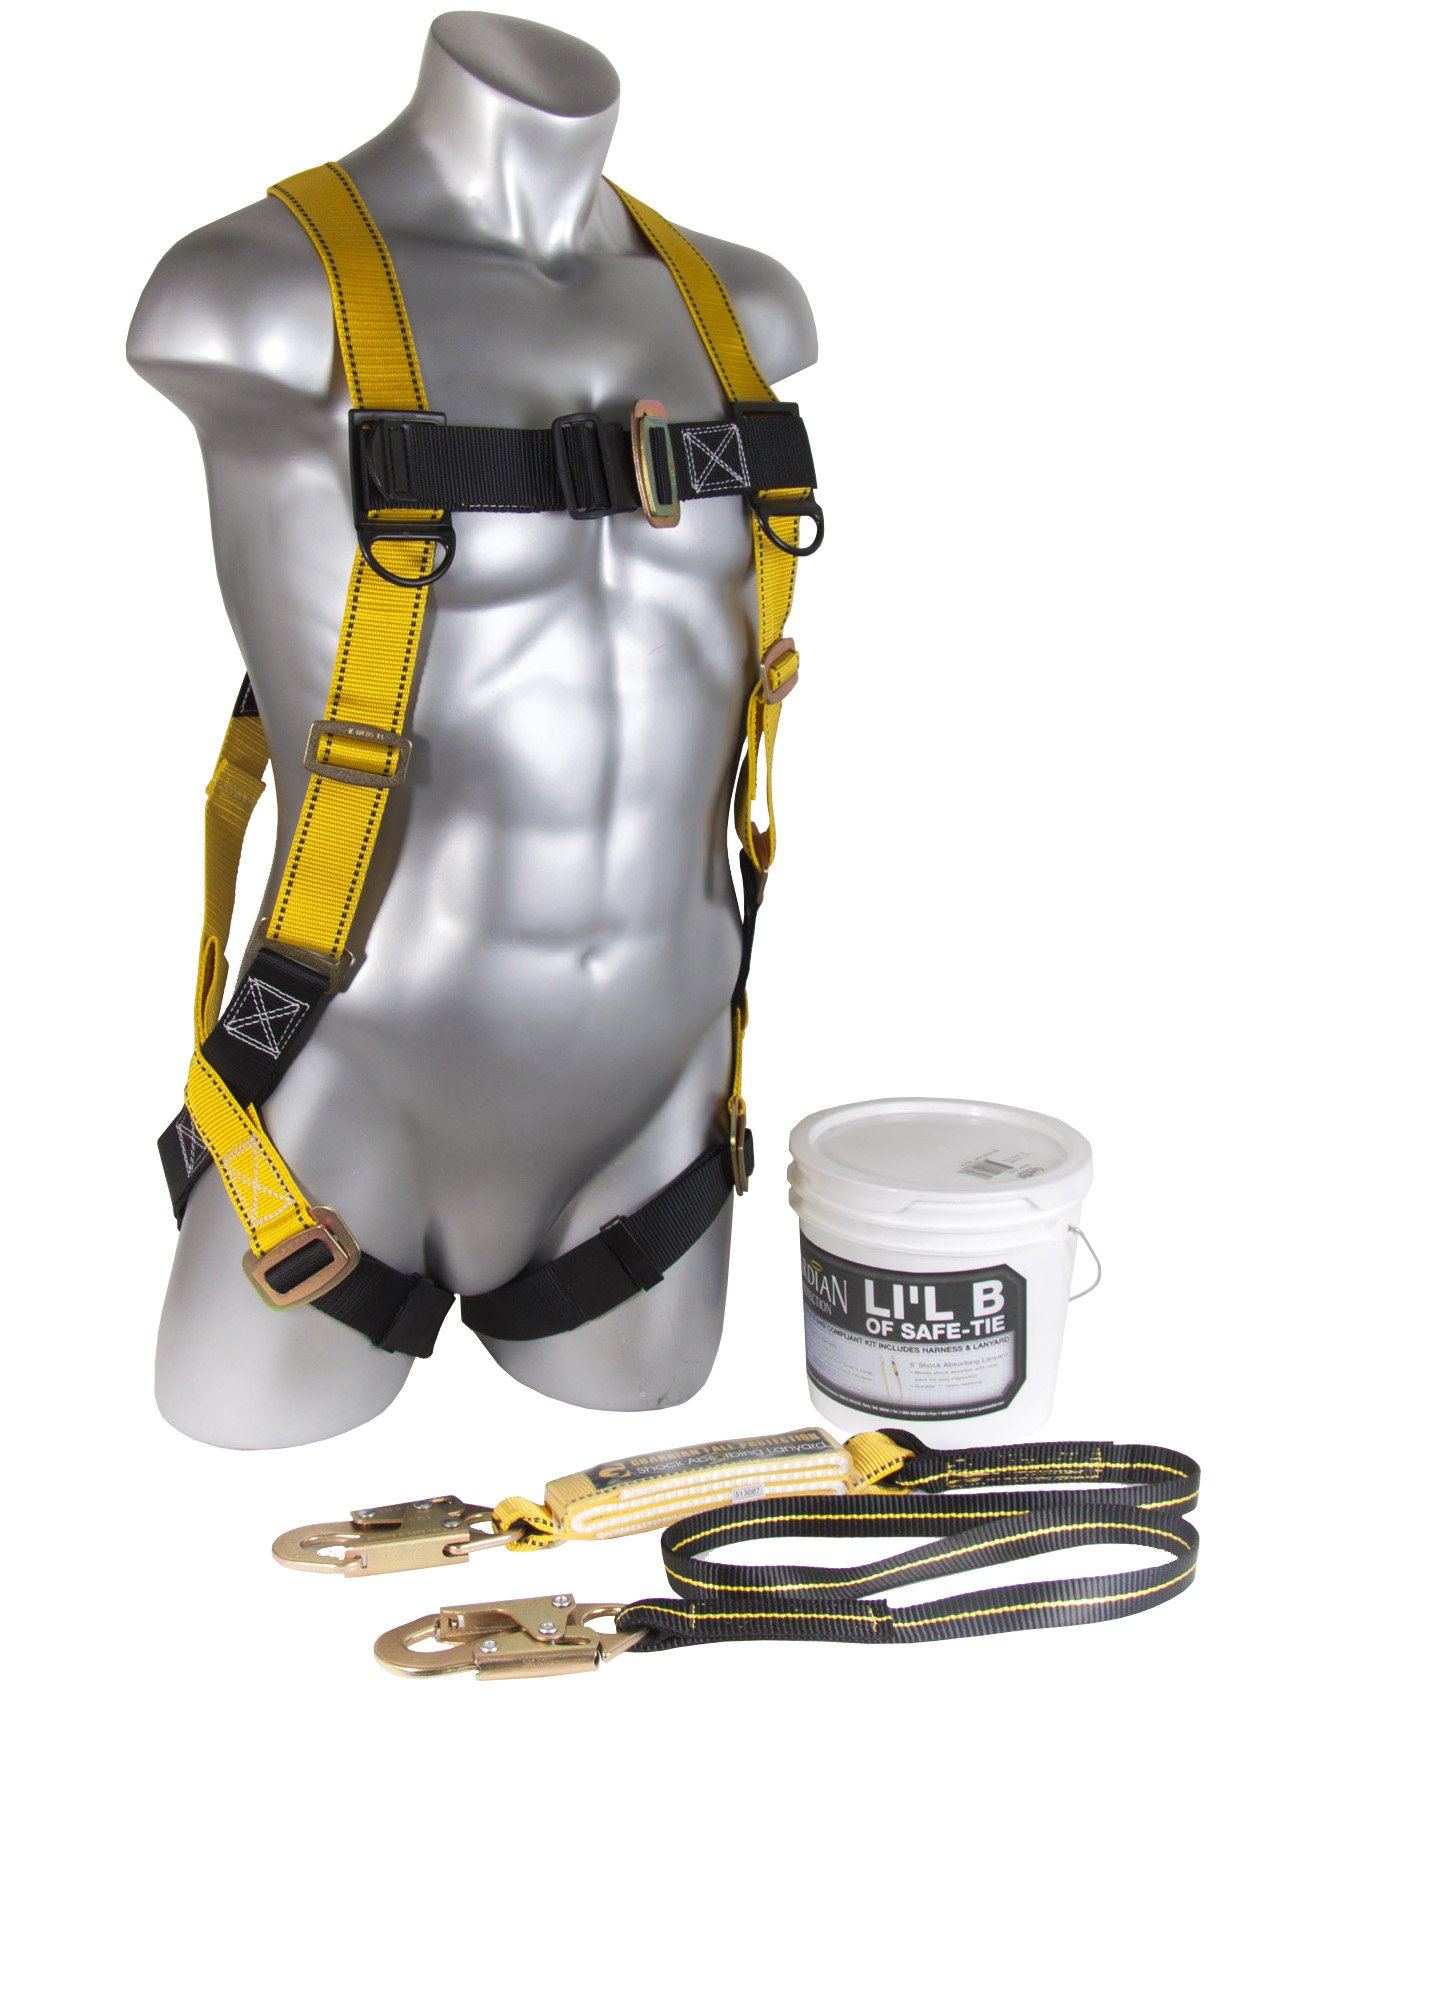 Guardian Fall Protection 00870 Li'l Bucket of Safe-Tie with HUV, Shock Absorbing Lanyard and Red Nylon Bag